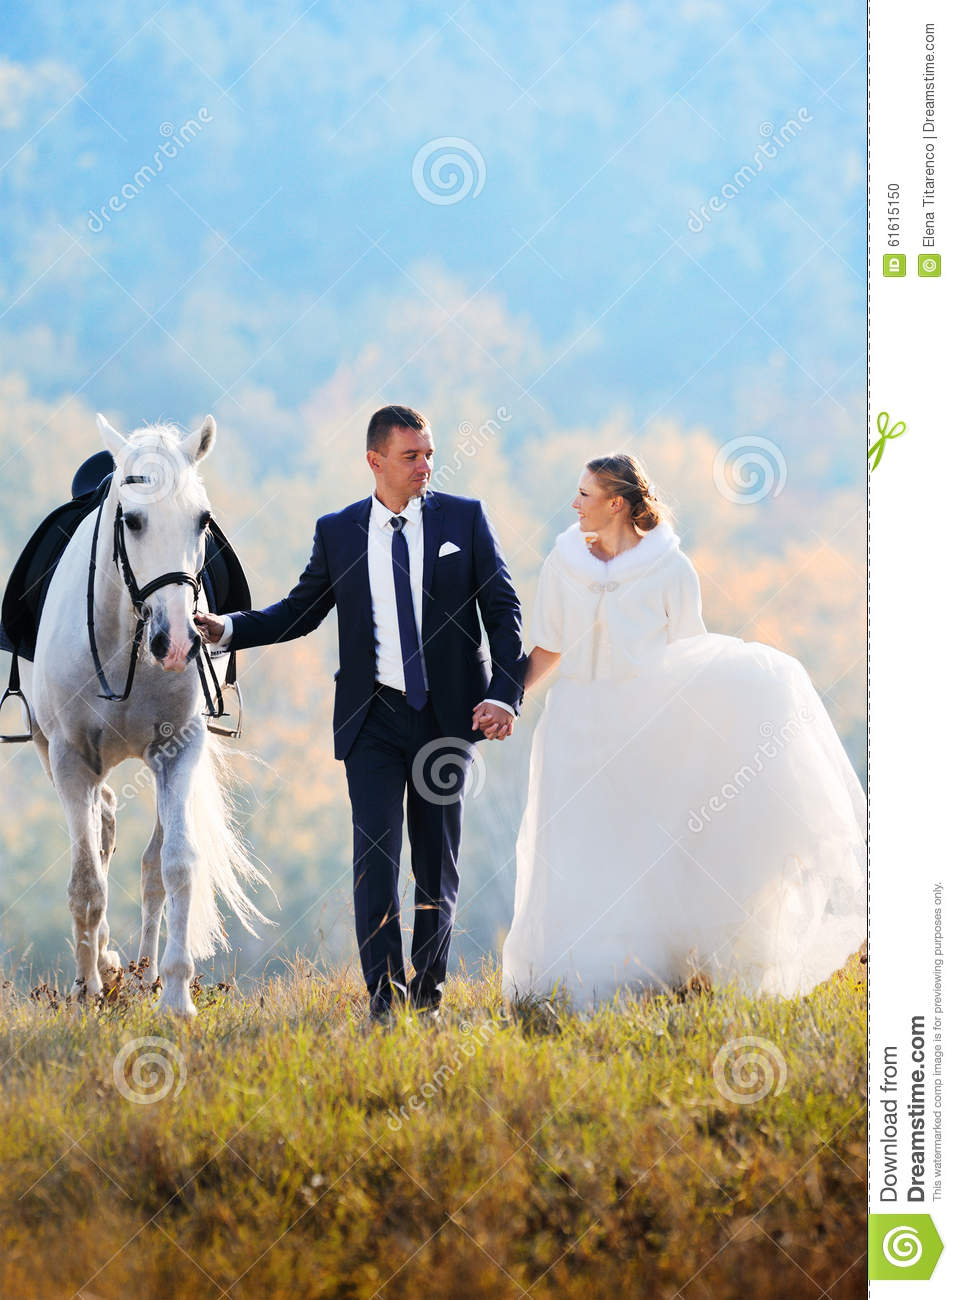 558 Wedding Bride Groom White Horse Photos Free Royalty Free Stock Photos From Dreamstime